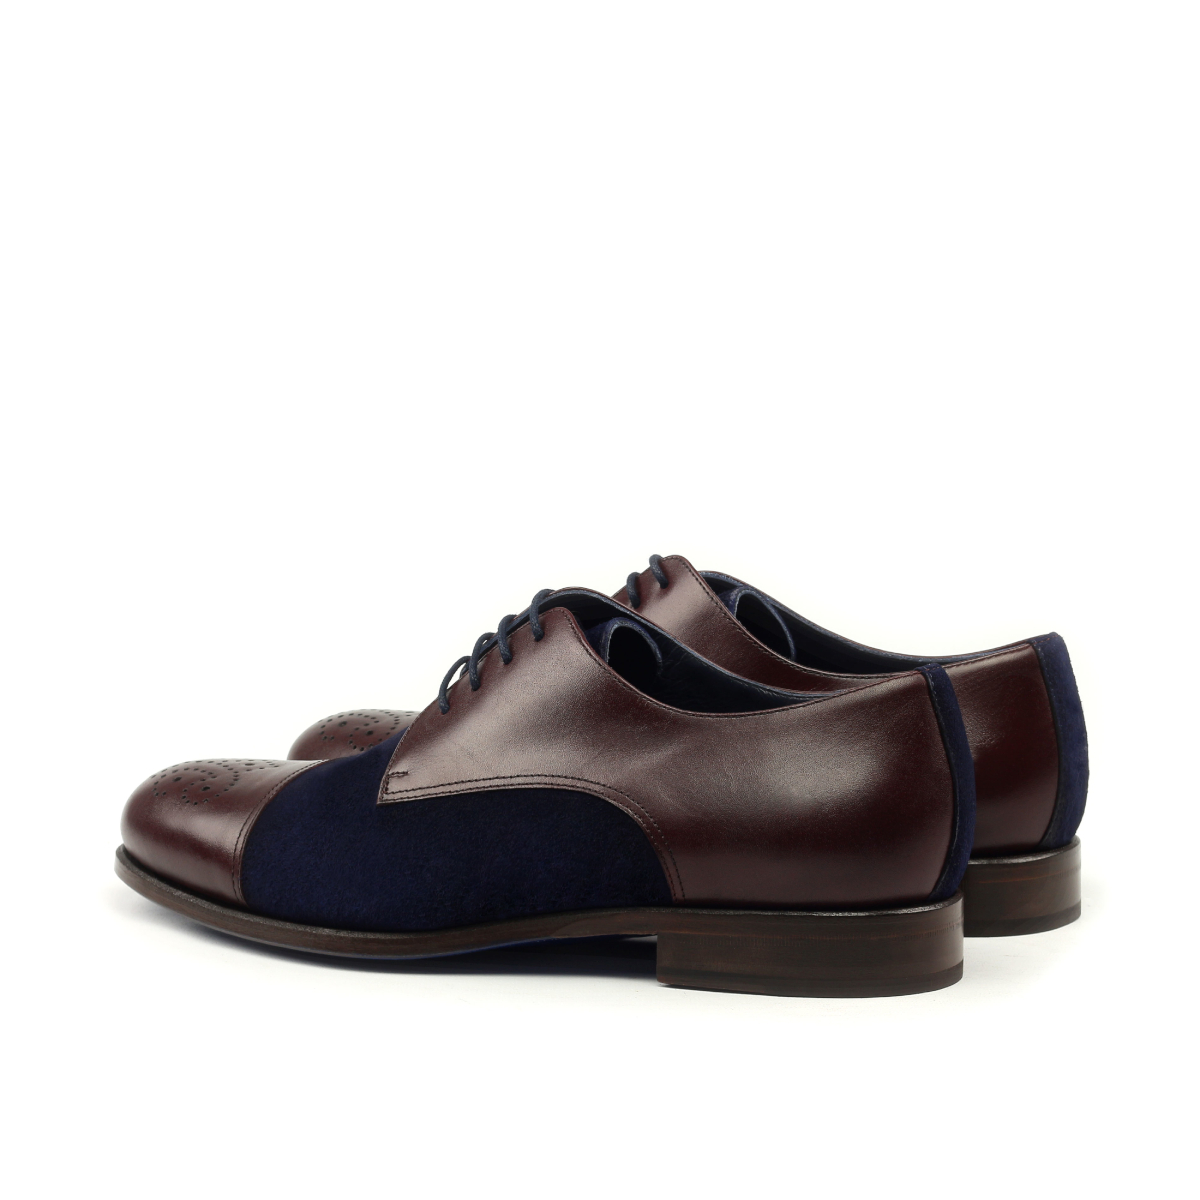 Punched cap toe Derby